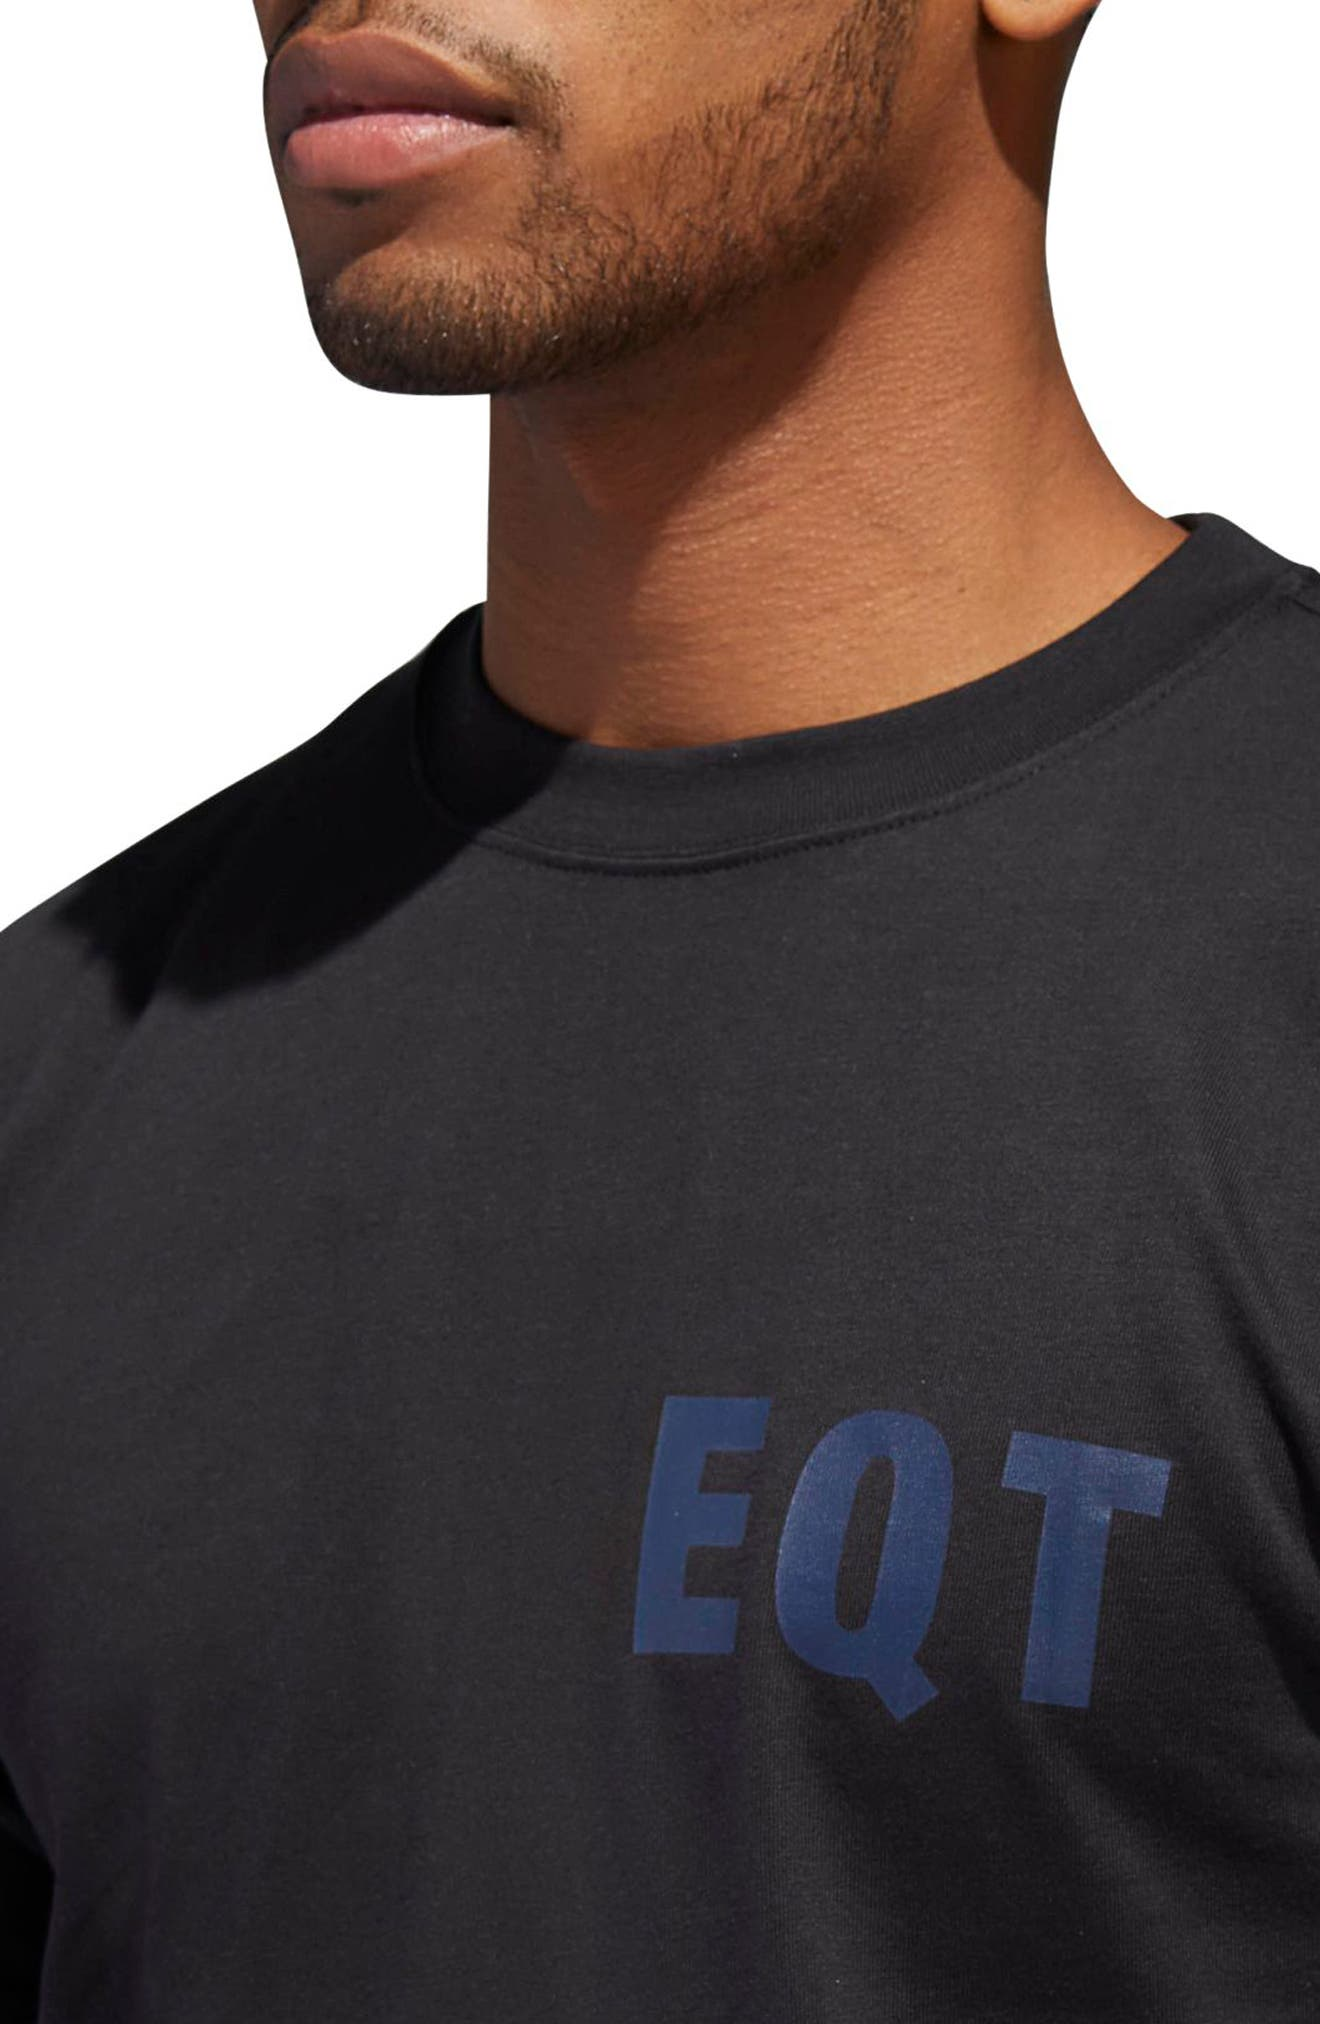 adidas EQT Panel Crewneck T-Shirt,                             Alternate thumbnail 4, color,                             BLACK